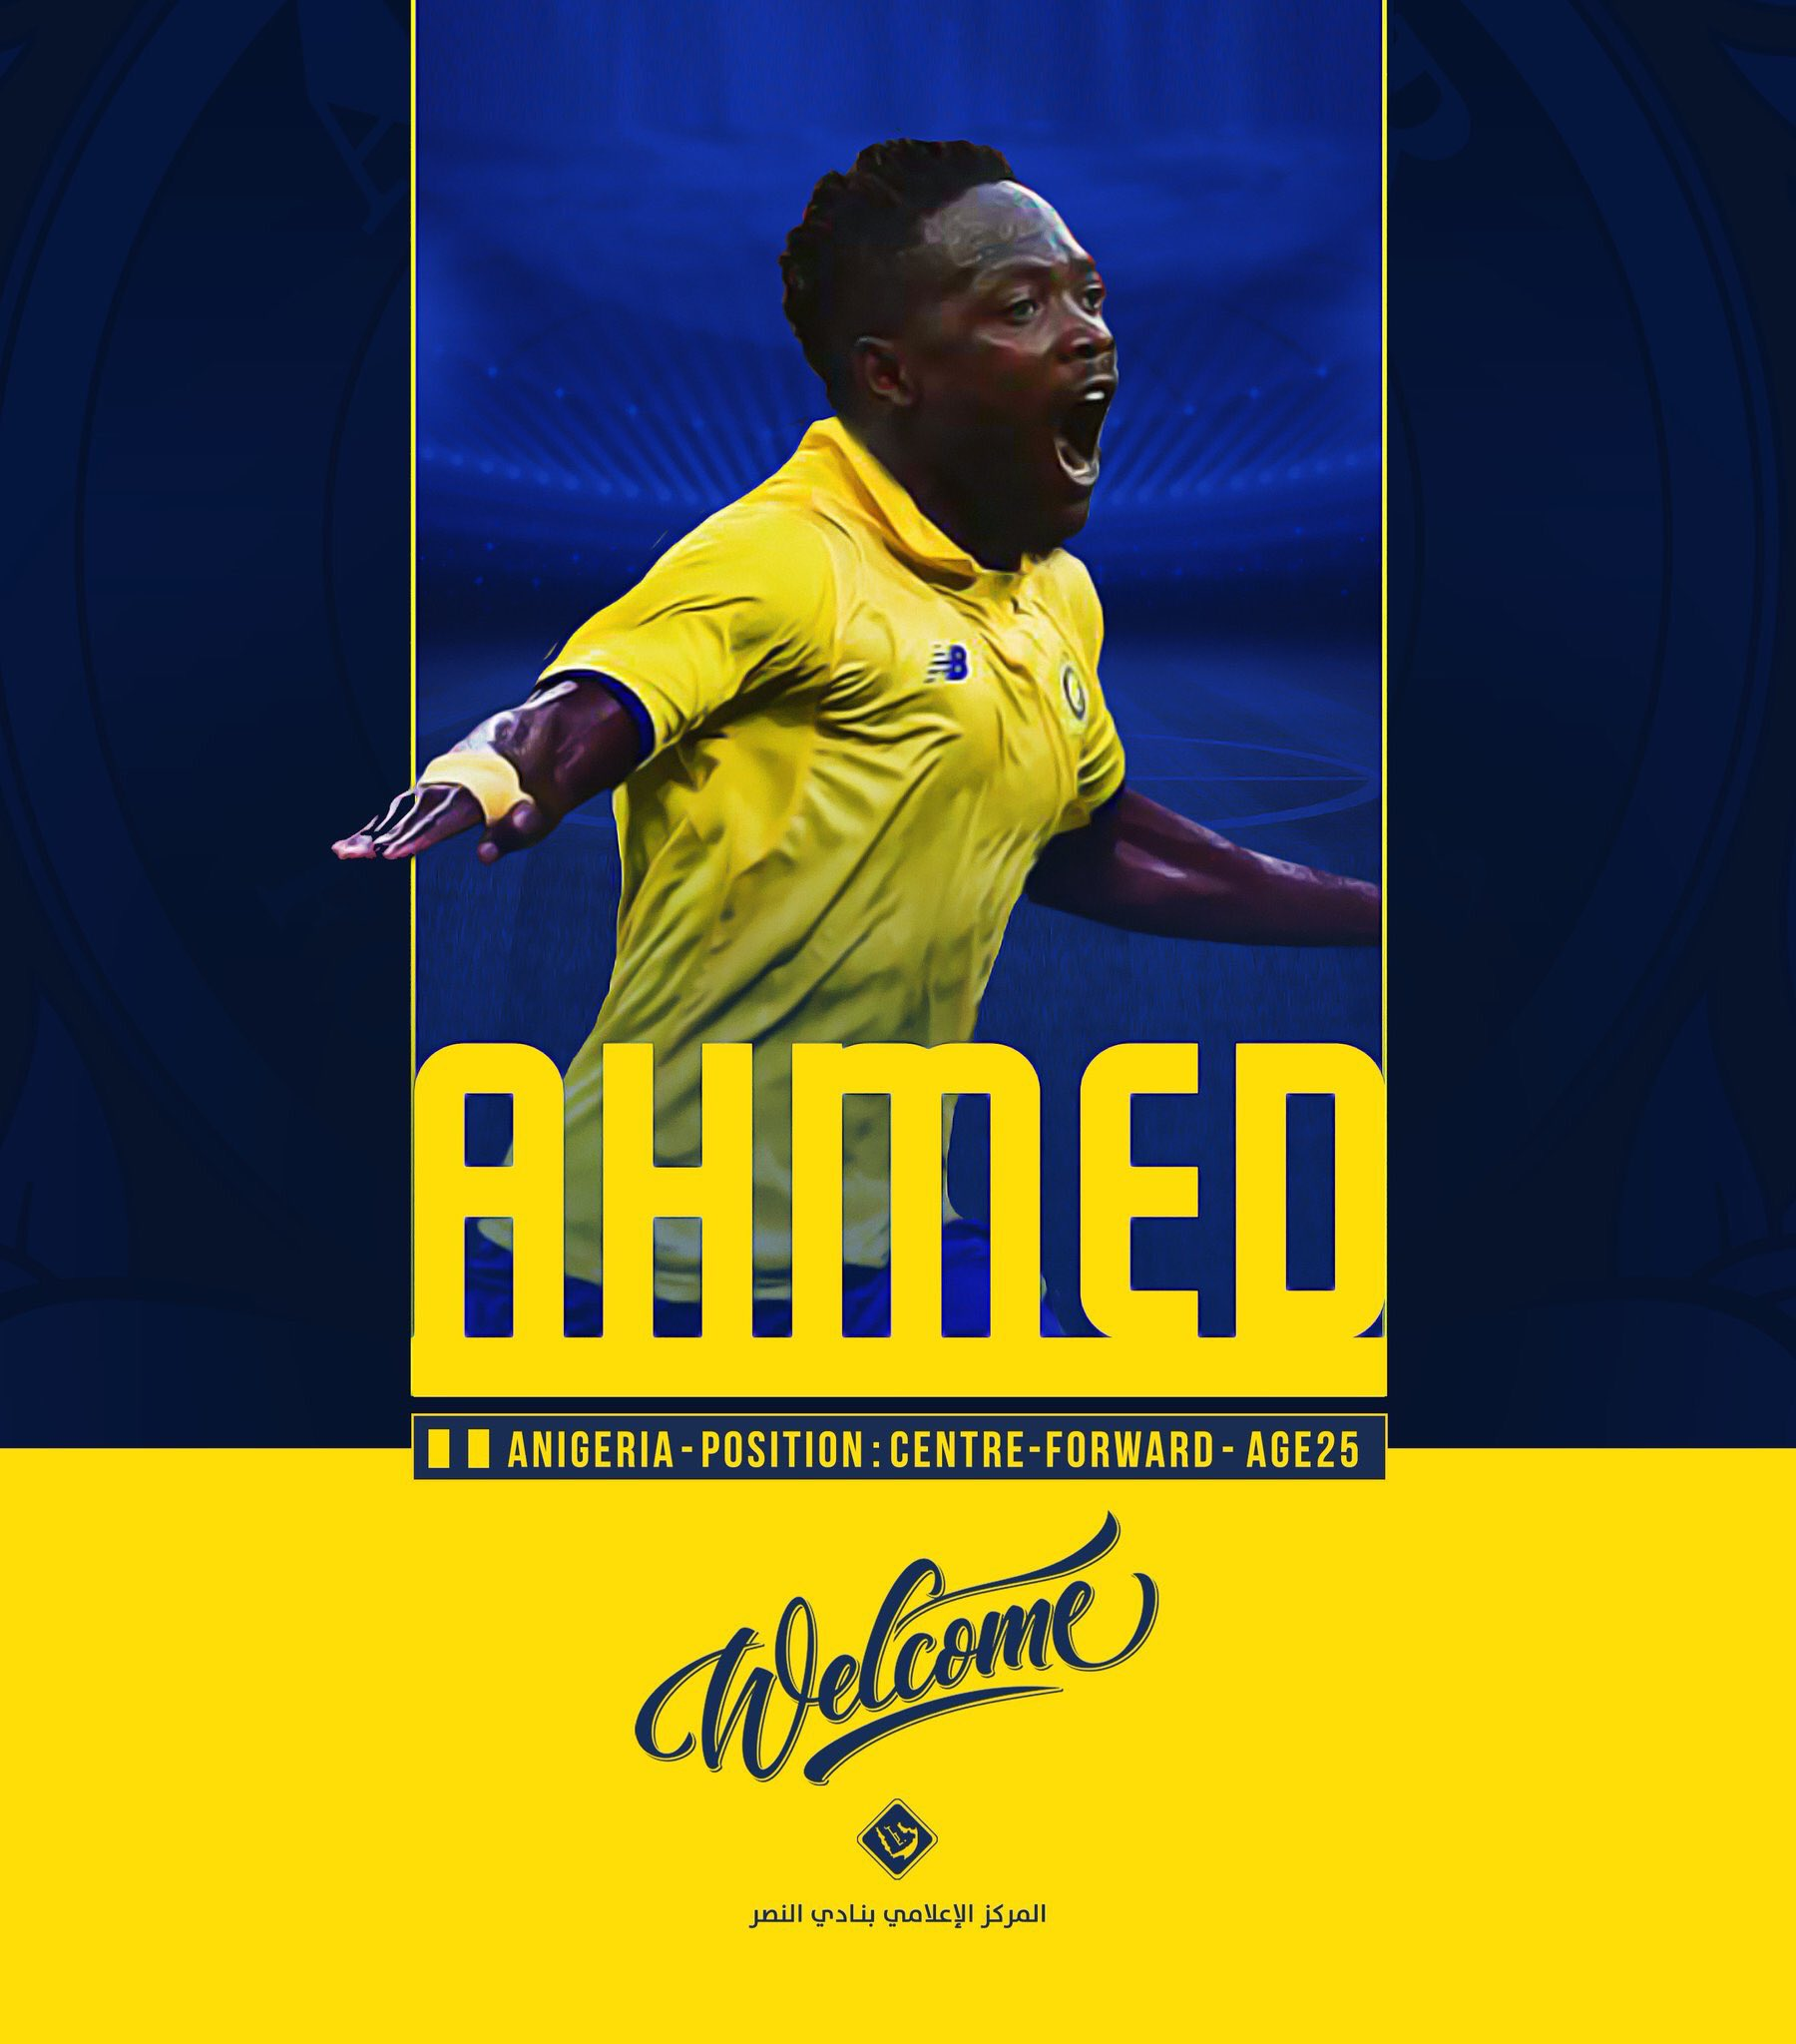 Musa Joins Saudi Club Al Nassr On Four-Year Contract